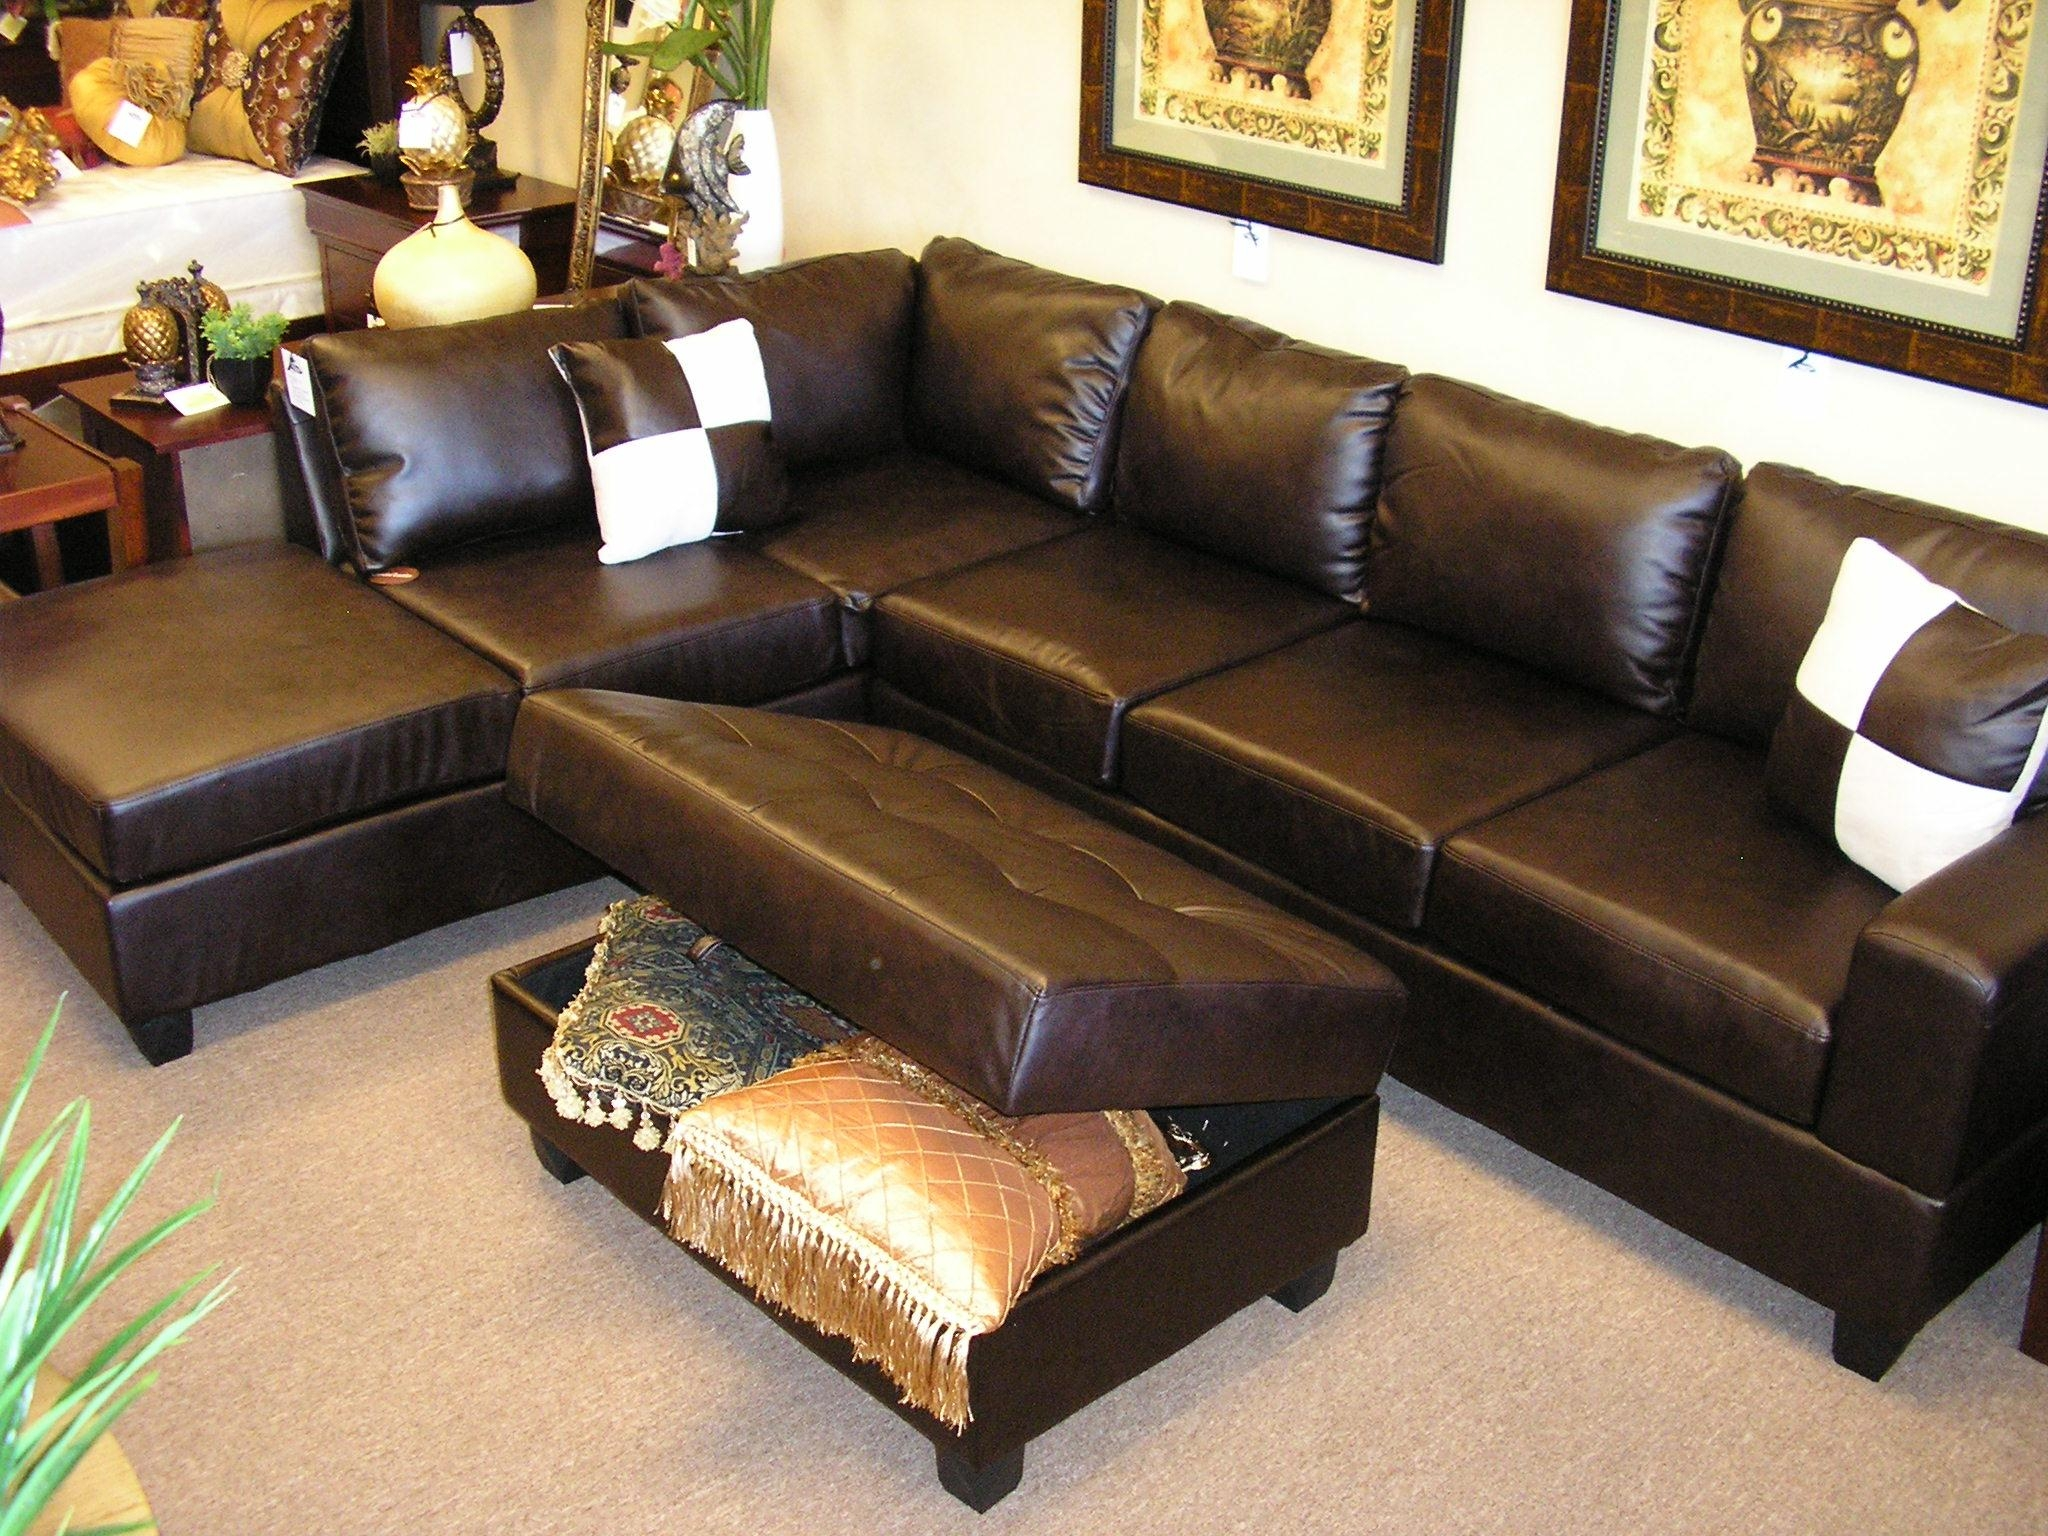 Large Sectional Sofa Leather | Tehranmix Decoration Intended For Large Leather Sectional (View 2 of 20)